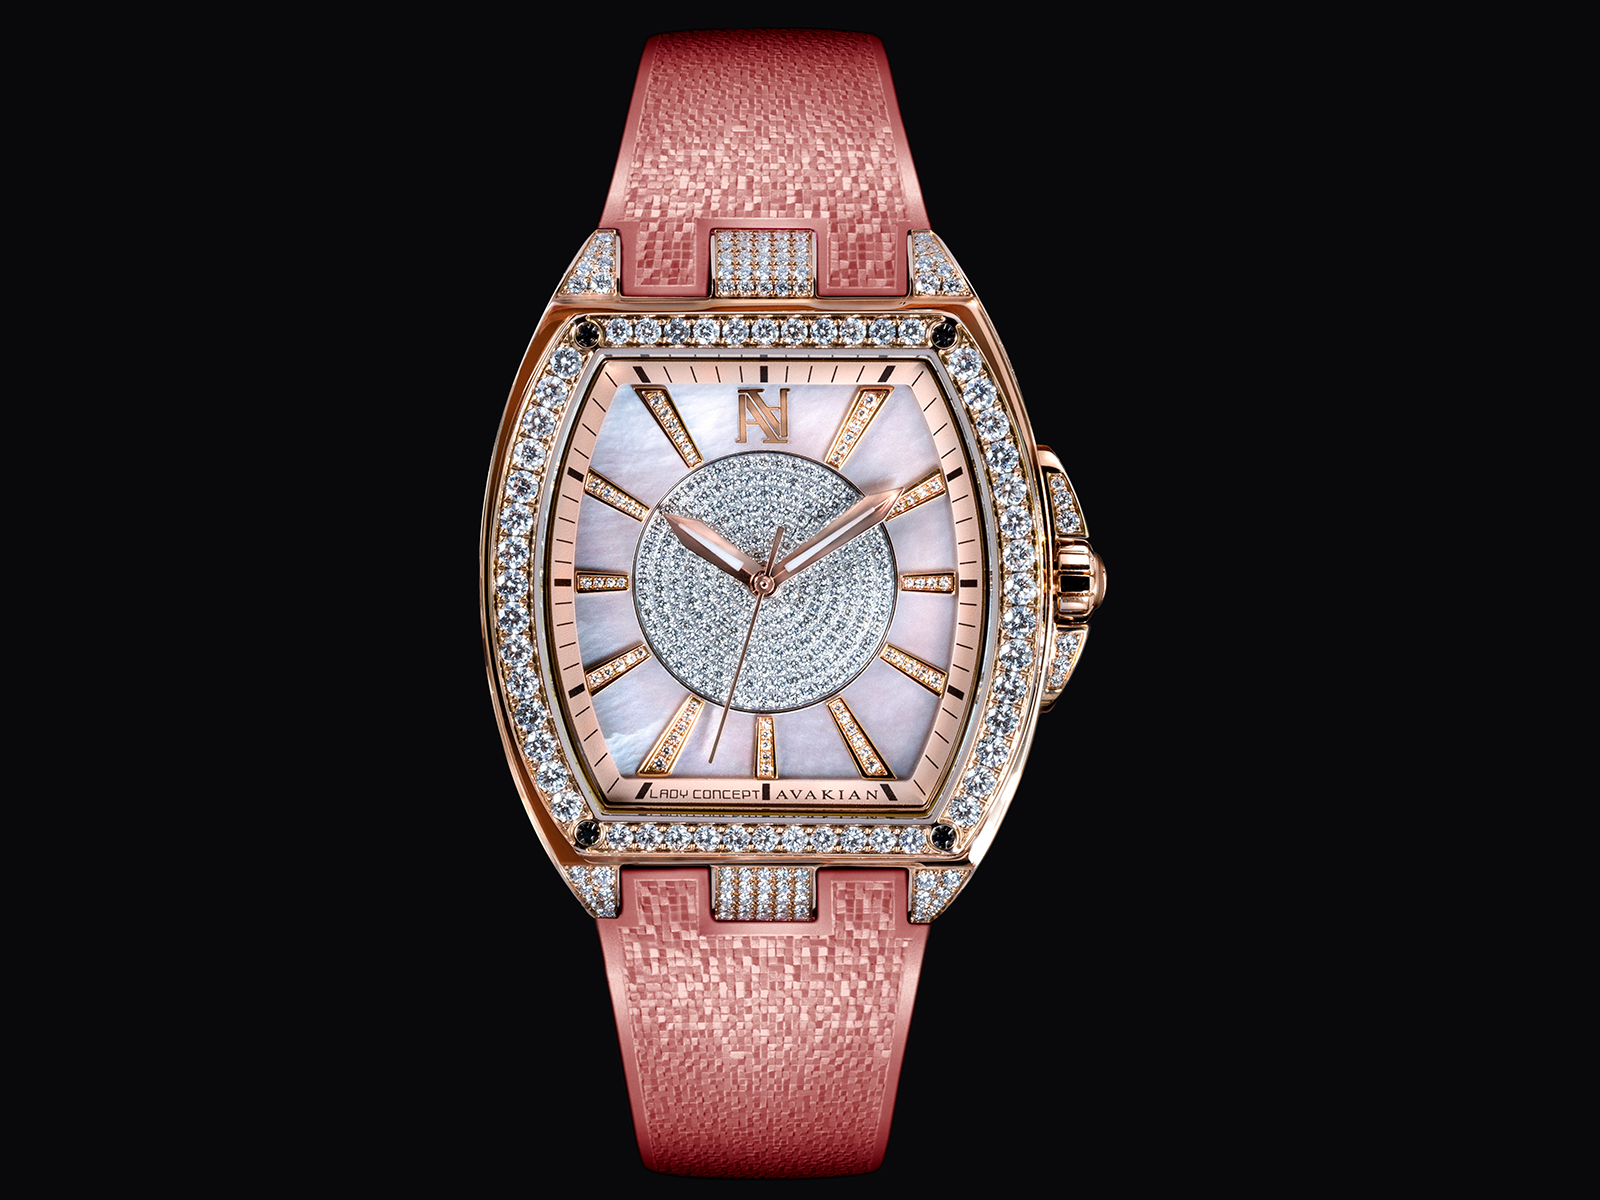 Avakian's new Lady Concept watch with diamonds